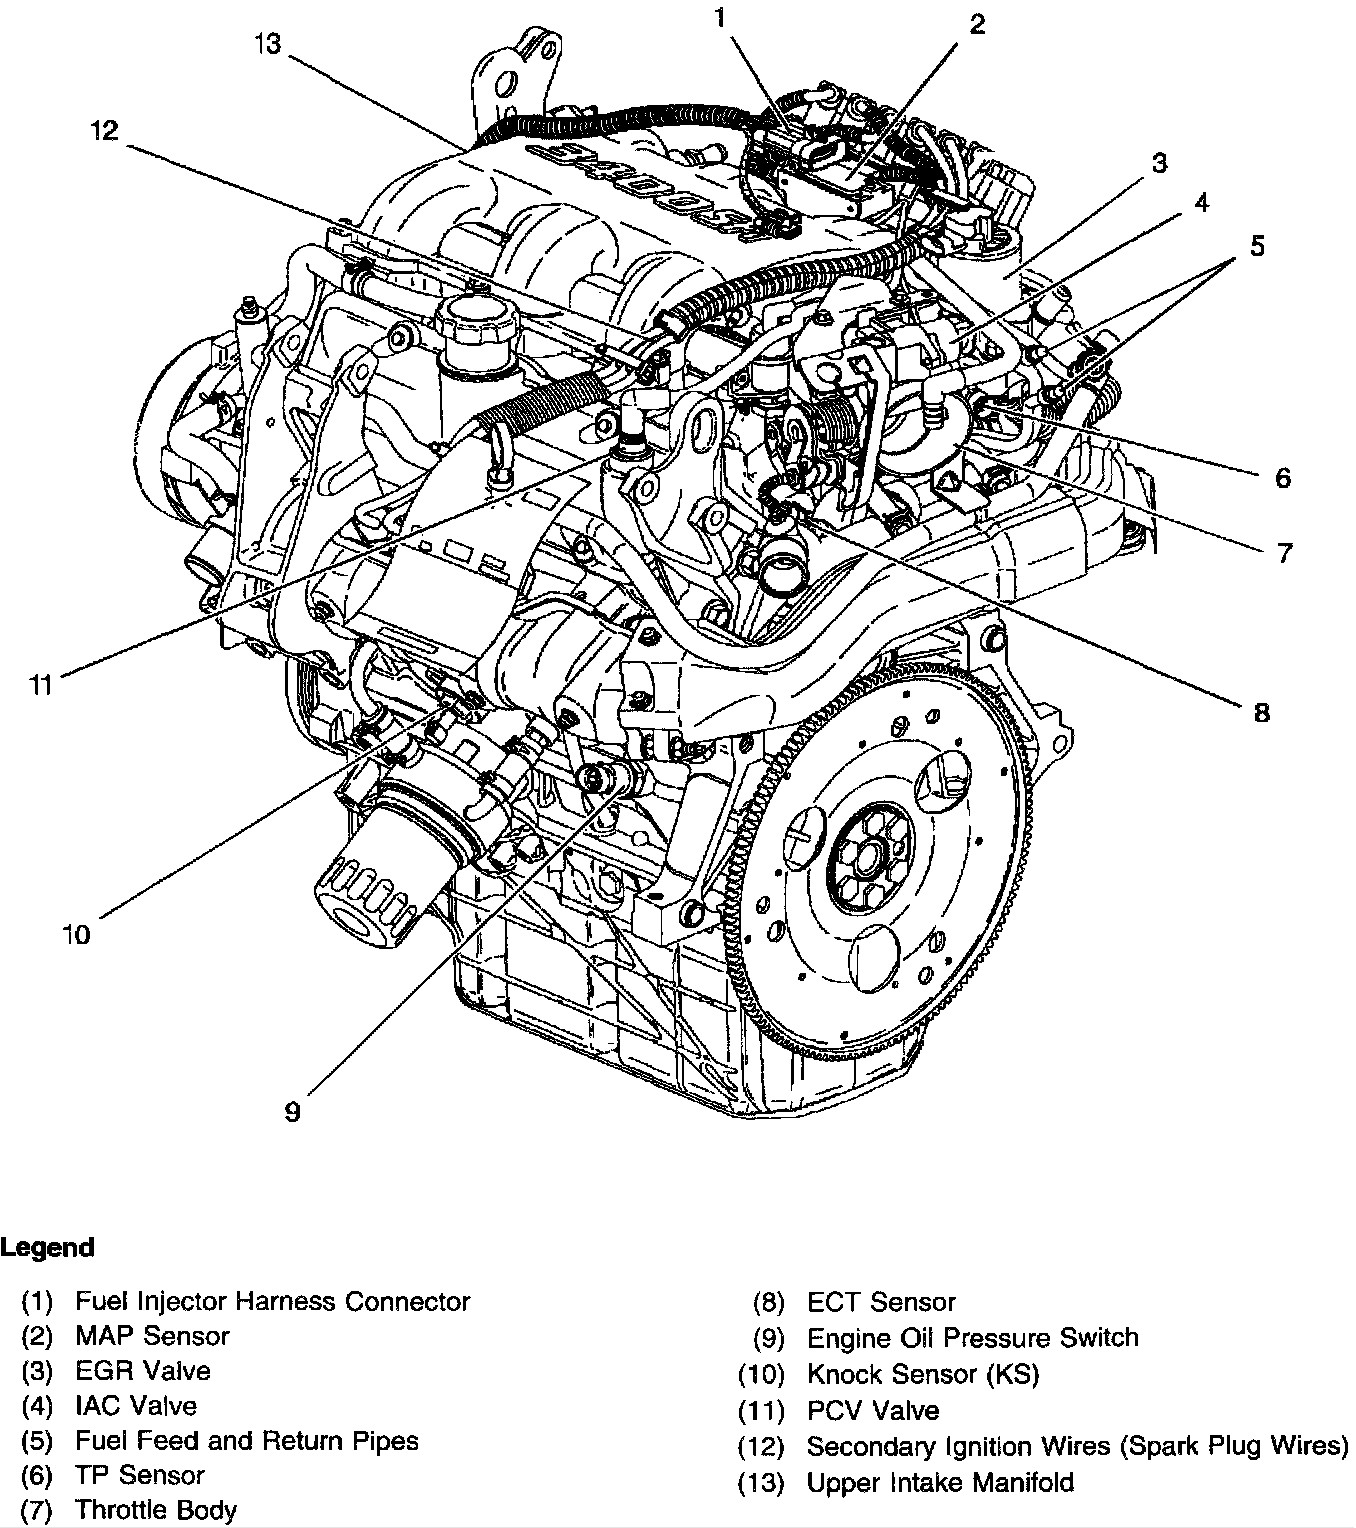 pontiac 3 4l v6 engine diagram experts of wiring diagram u2022 rh evilcloud  co uk 2002 Chevy Malibu Cooling Diagram 3100 SFI V6 Engine Diagram